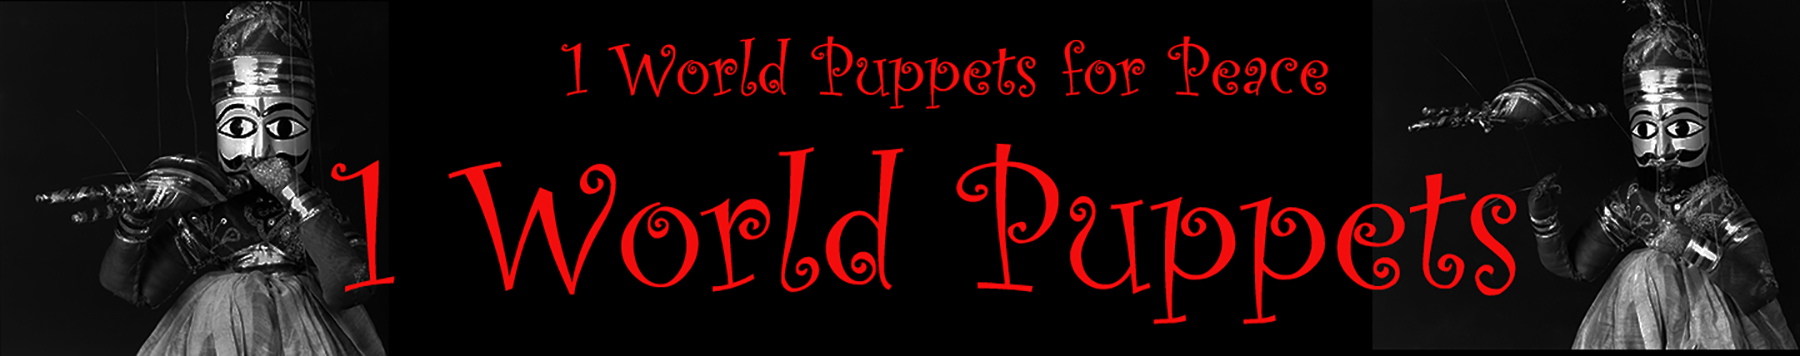 Header for 1 World Puppets